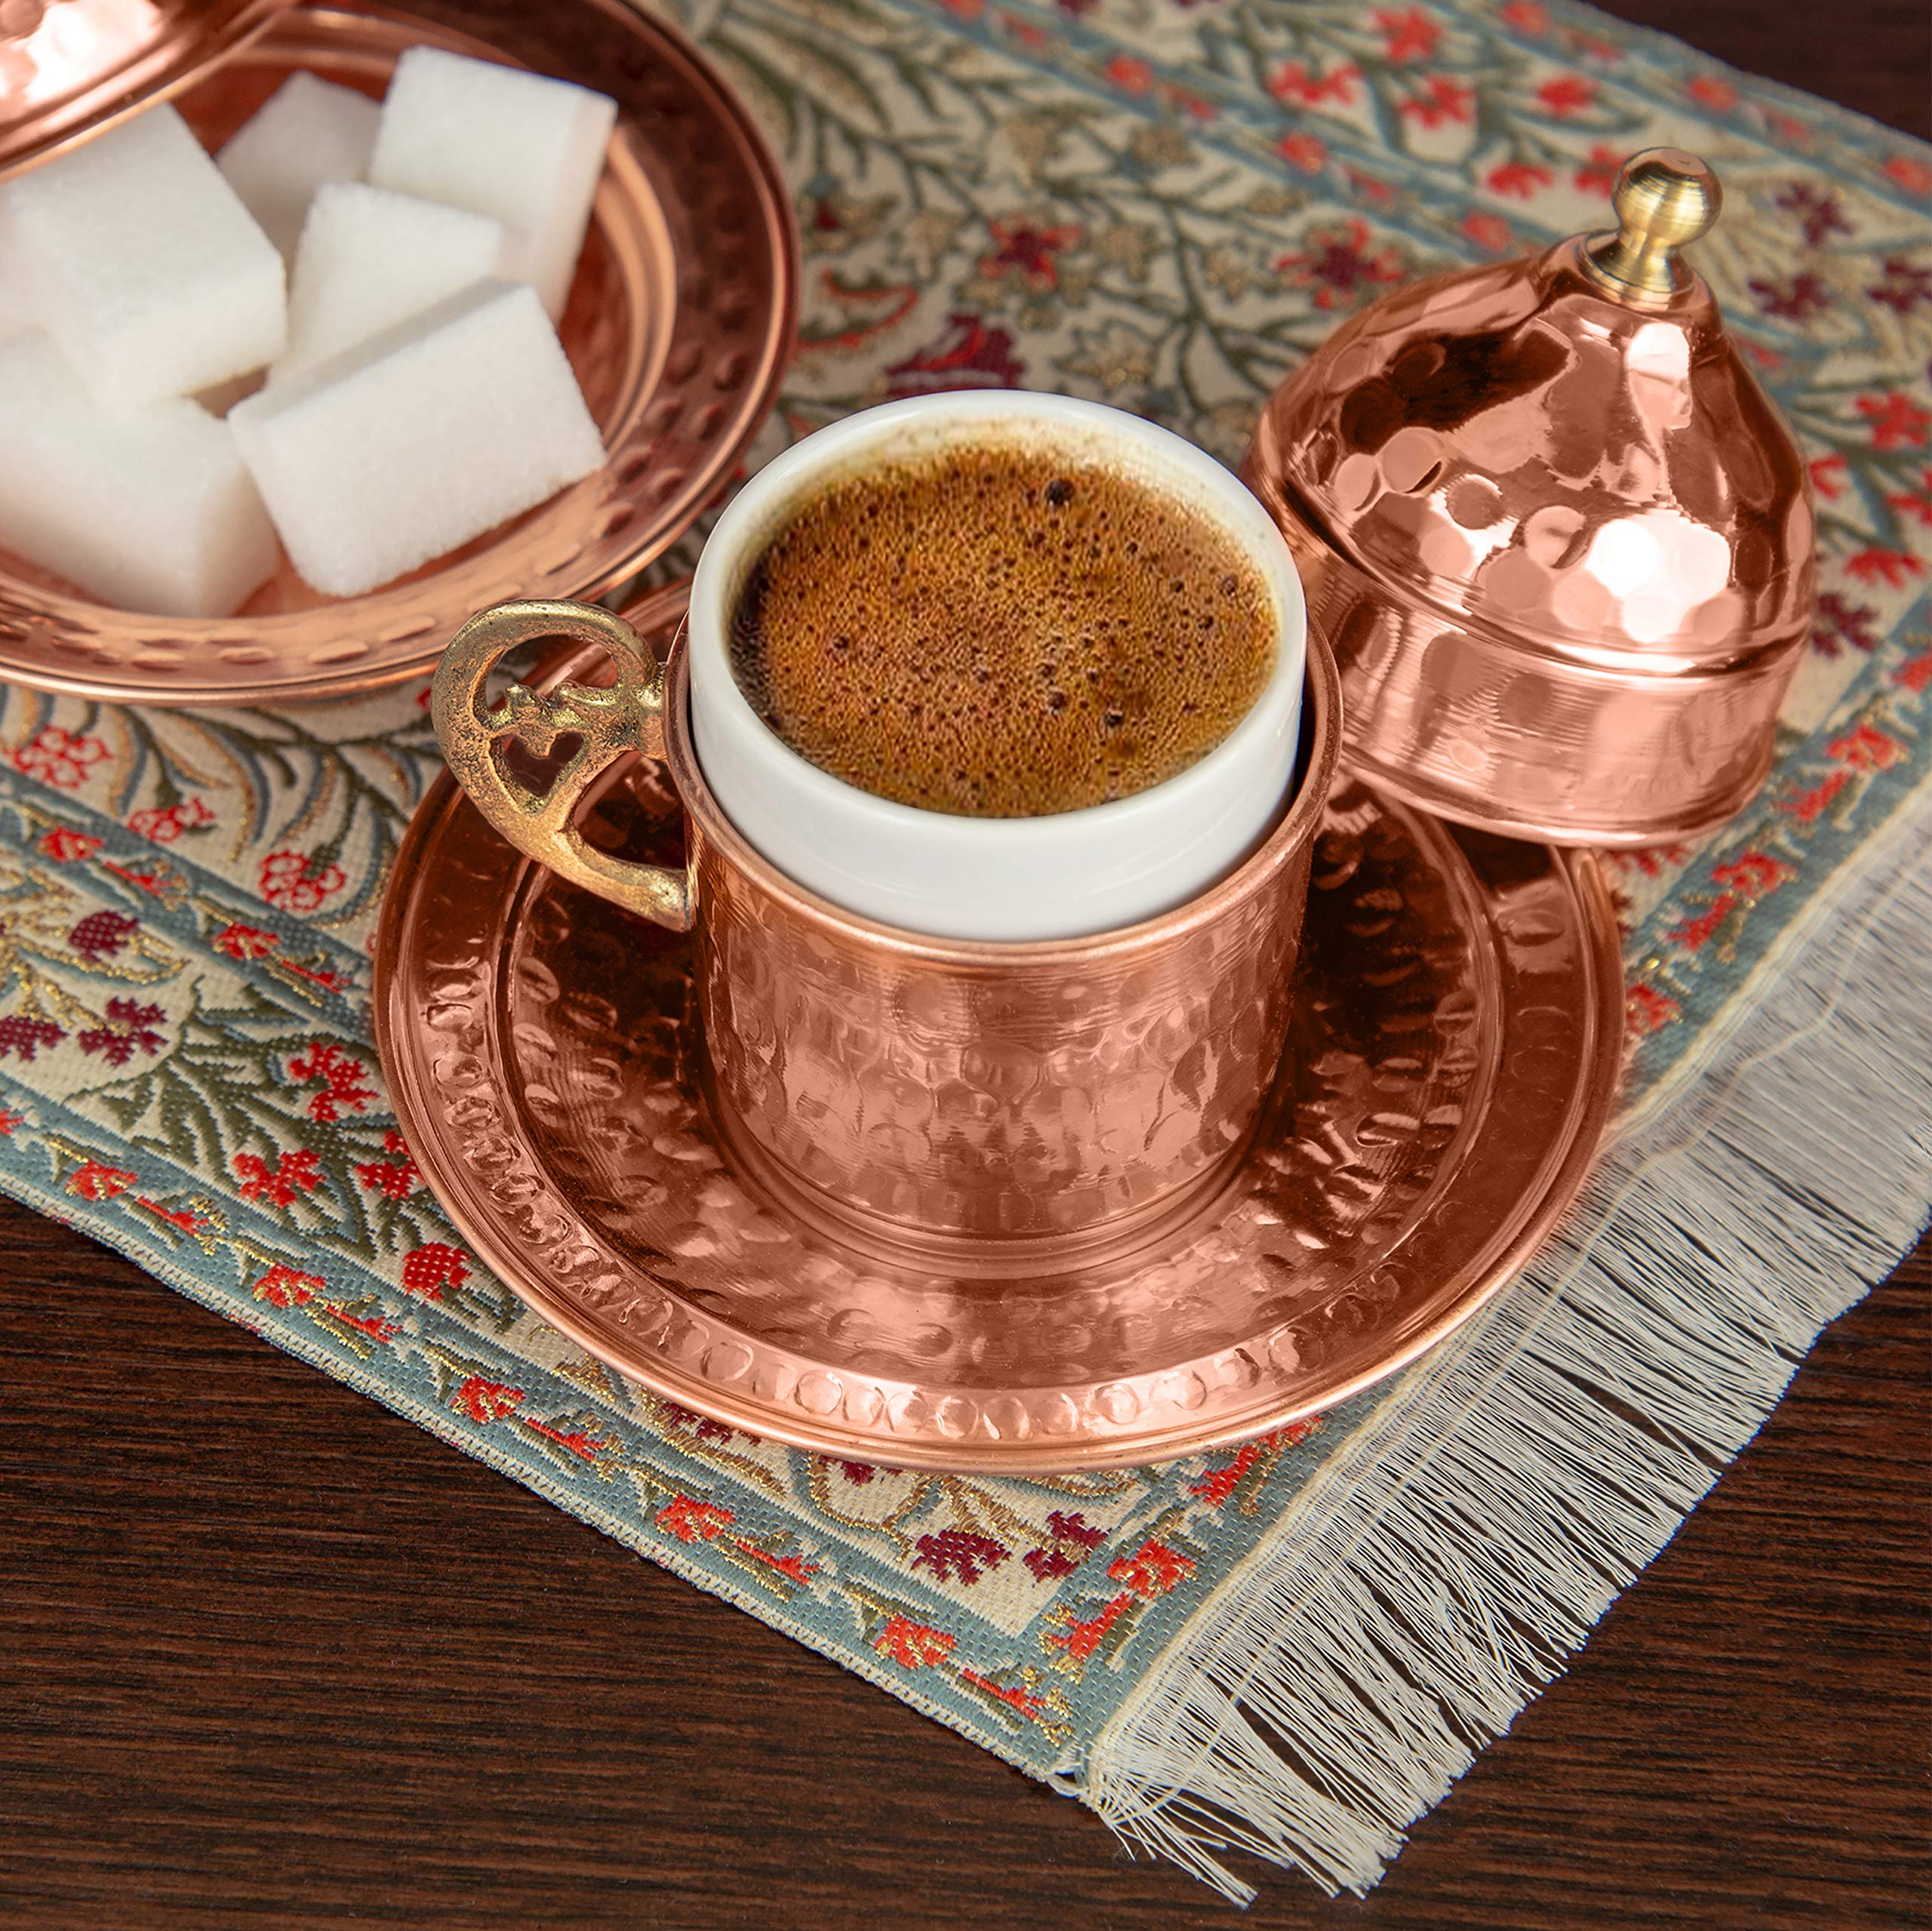 Handmade Copper Turkish Coffee Set of 6 Cups with Cezve, Saucers, Serving Bowl with Tray – Decorative Handcrafted Ottoman Style Demitasse 28pc Gift Pack Kit with Armenian Espresso Mugs, Arabic Dish by Mandalina Magic (Image #8)